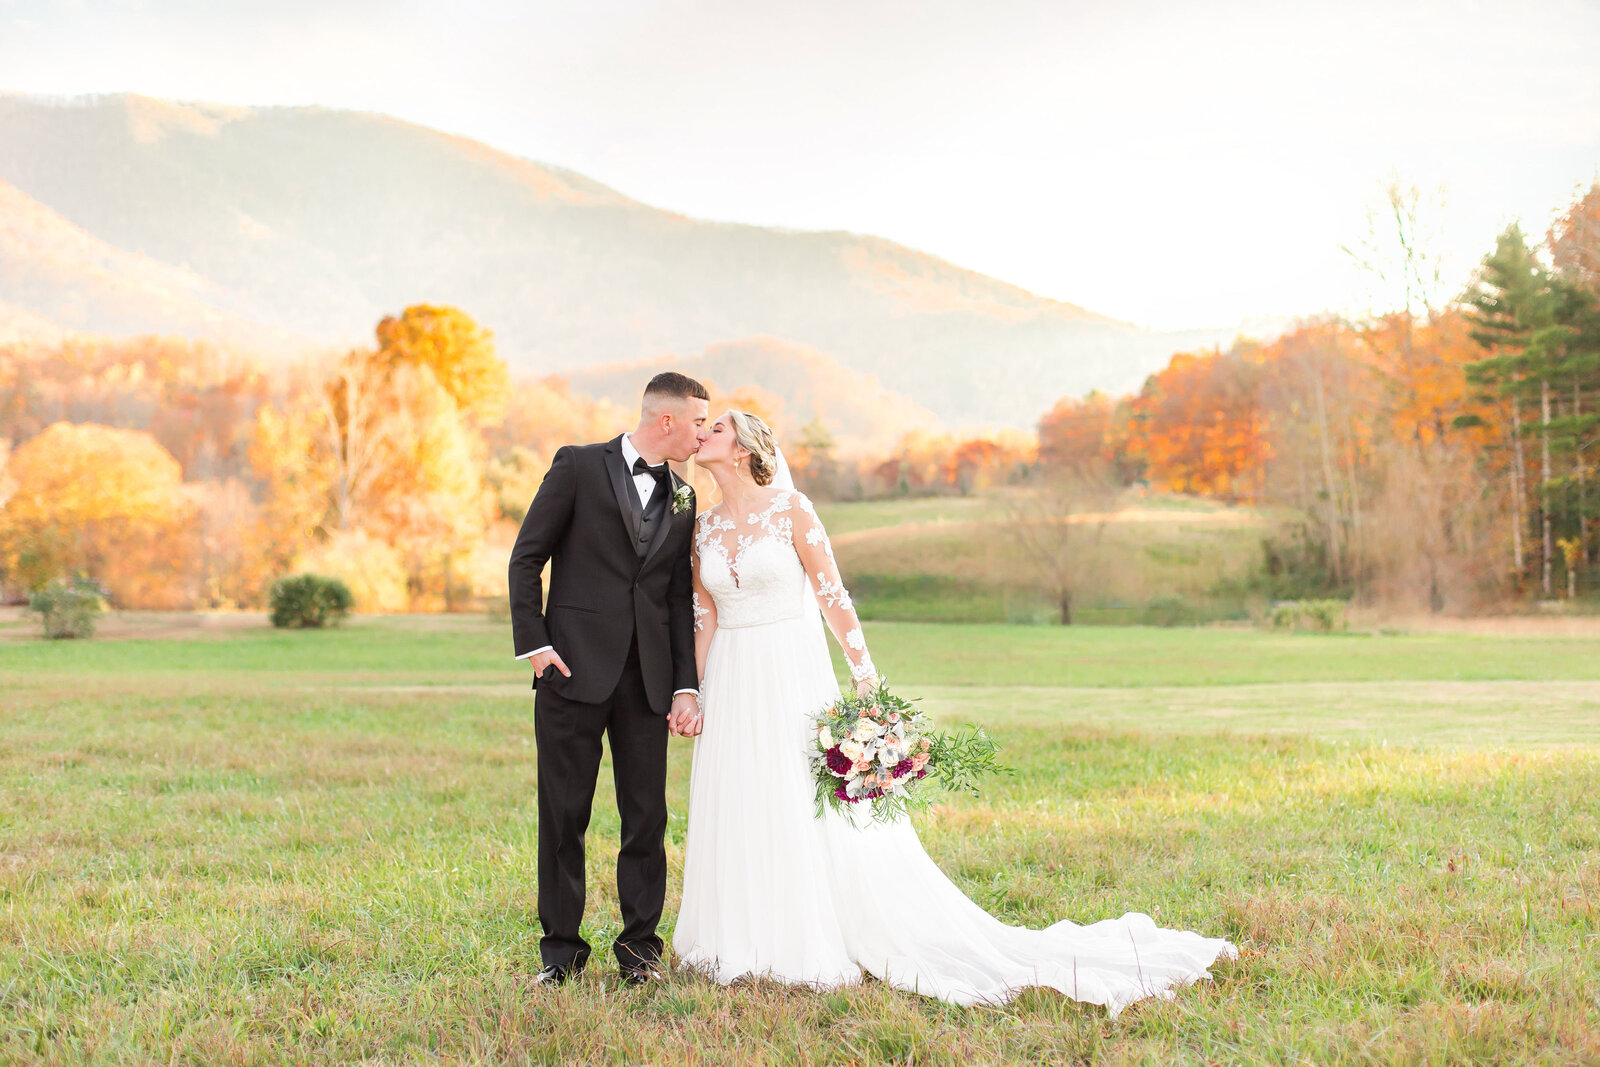 themarketatgrelenweddingamandaandchadphotography2